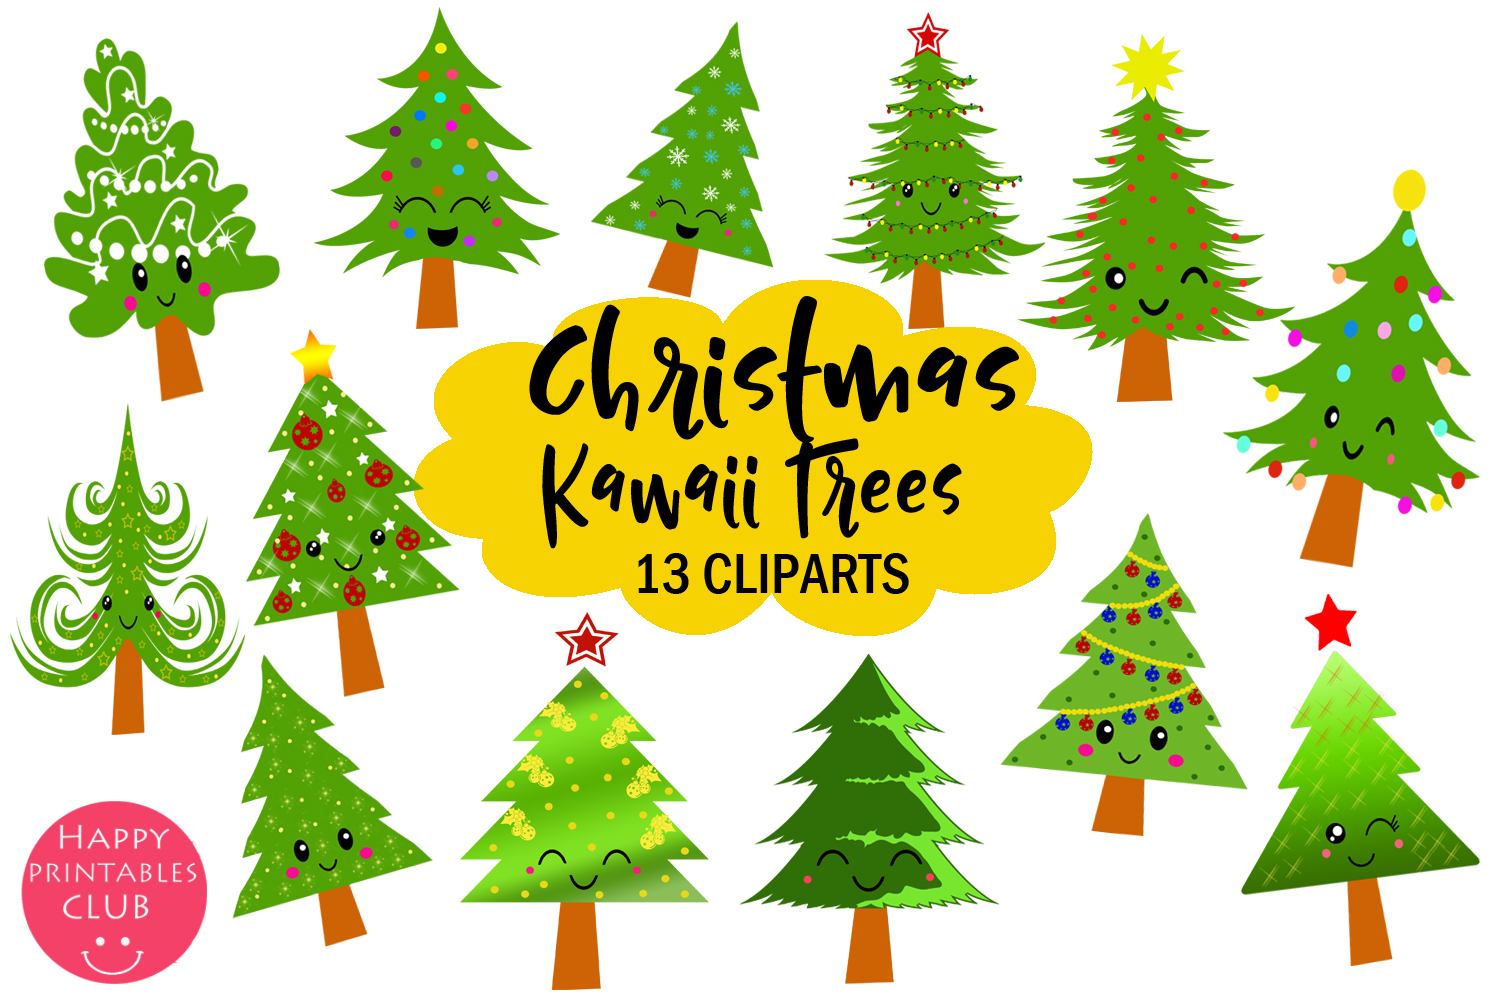 Cute Kawaii Christmas Trees Clipart.